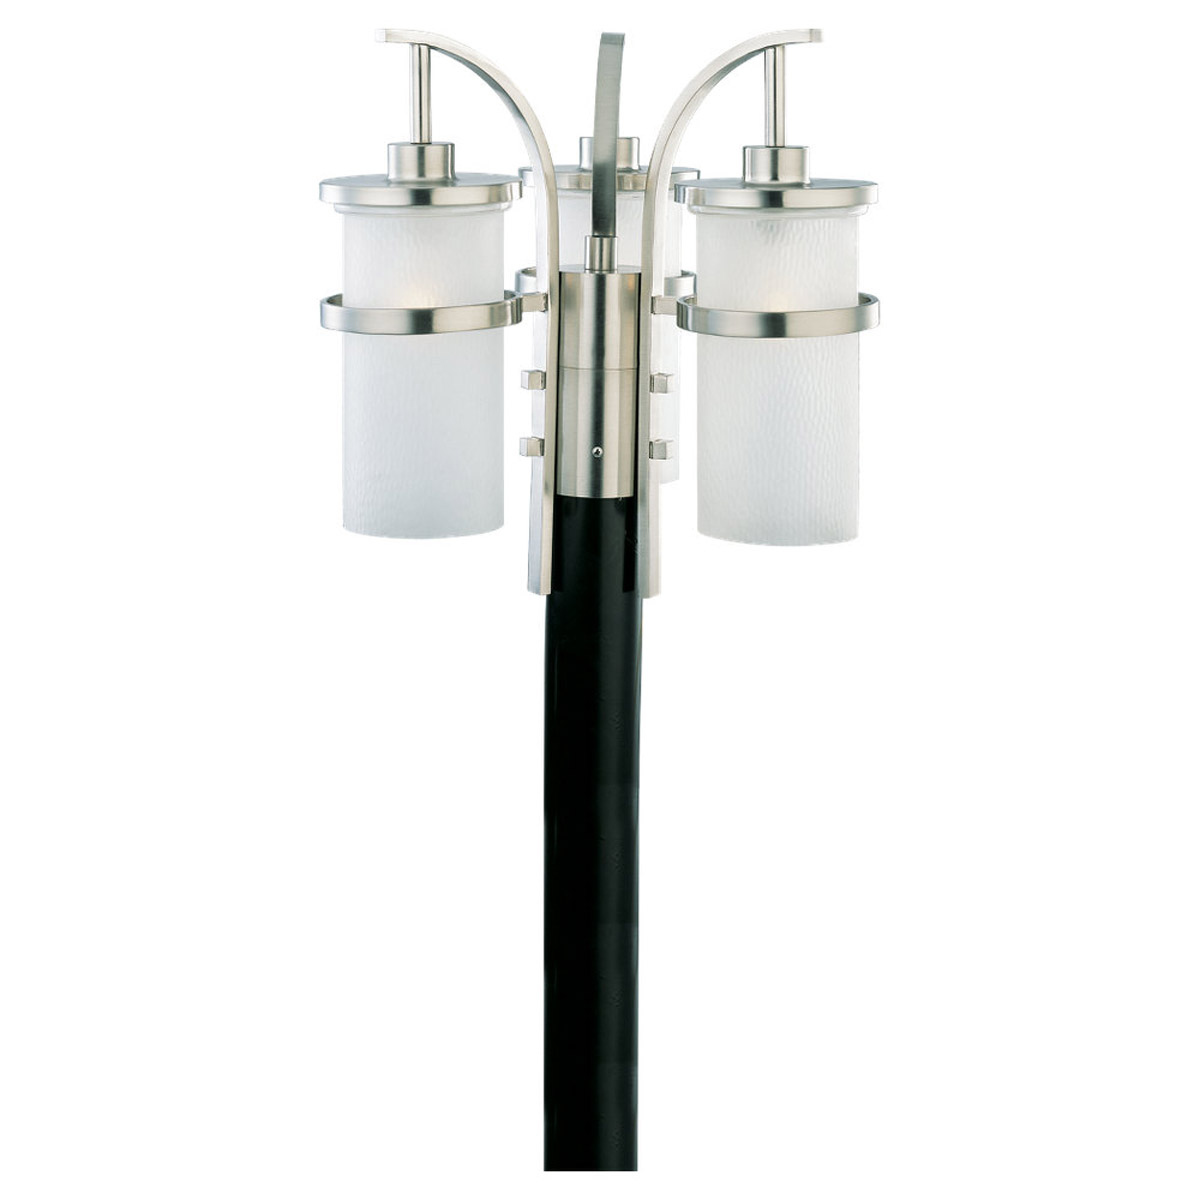 Sea Gull Lighting Eternity 3 Light Outdoor Post Lantern in Brushed Nickel 82115-962 photo